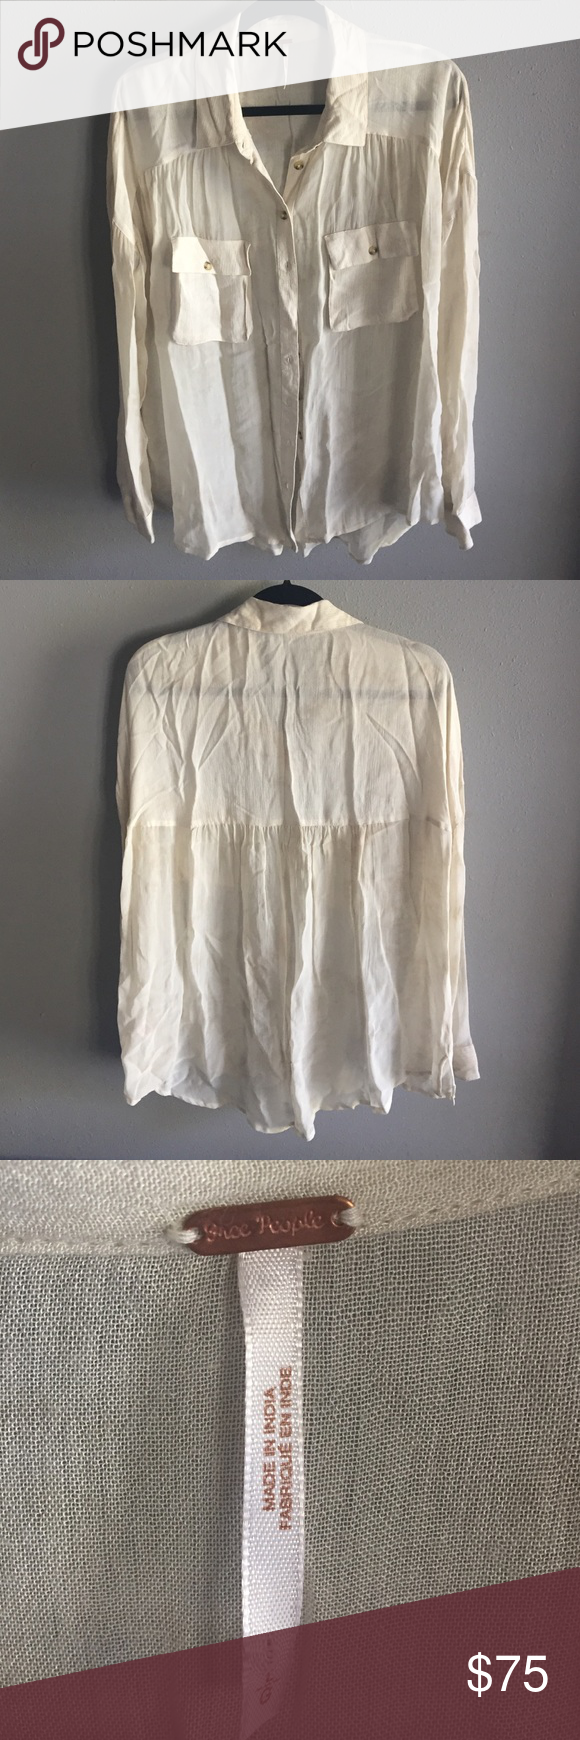 Free People Sheer Long Sleeve Button Up Shirt This sheer, button-up is NWOT and a great piece to add to your closet! Versatile and easy to throw on with a cute bralette, your favorite jeans and a pair of booties. Free People Tops Button Down Shirts